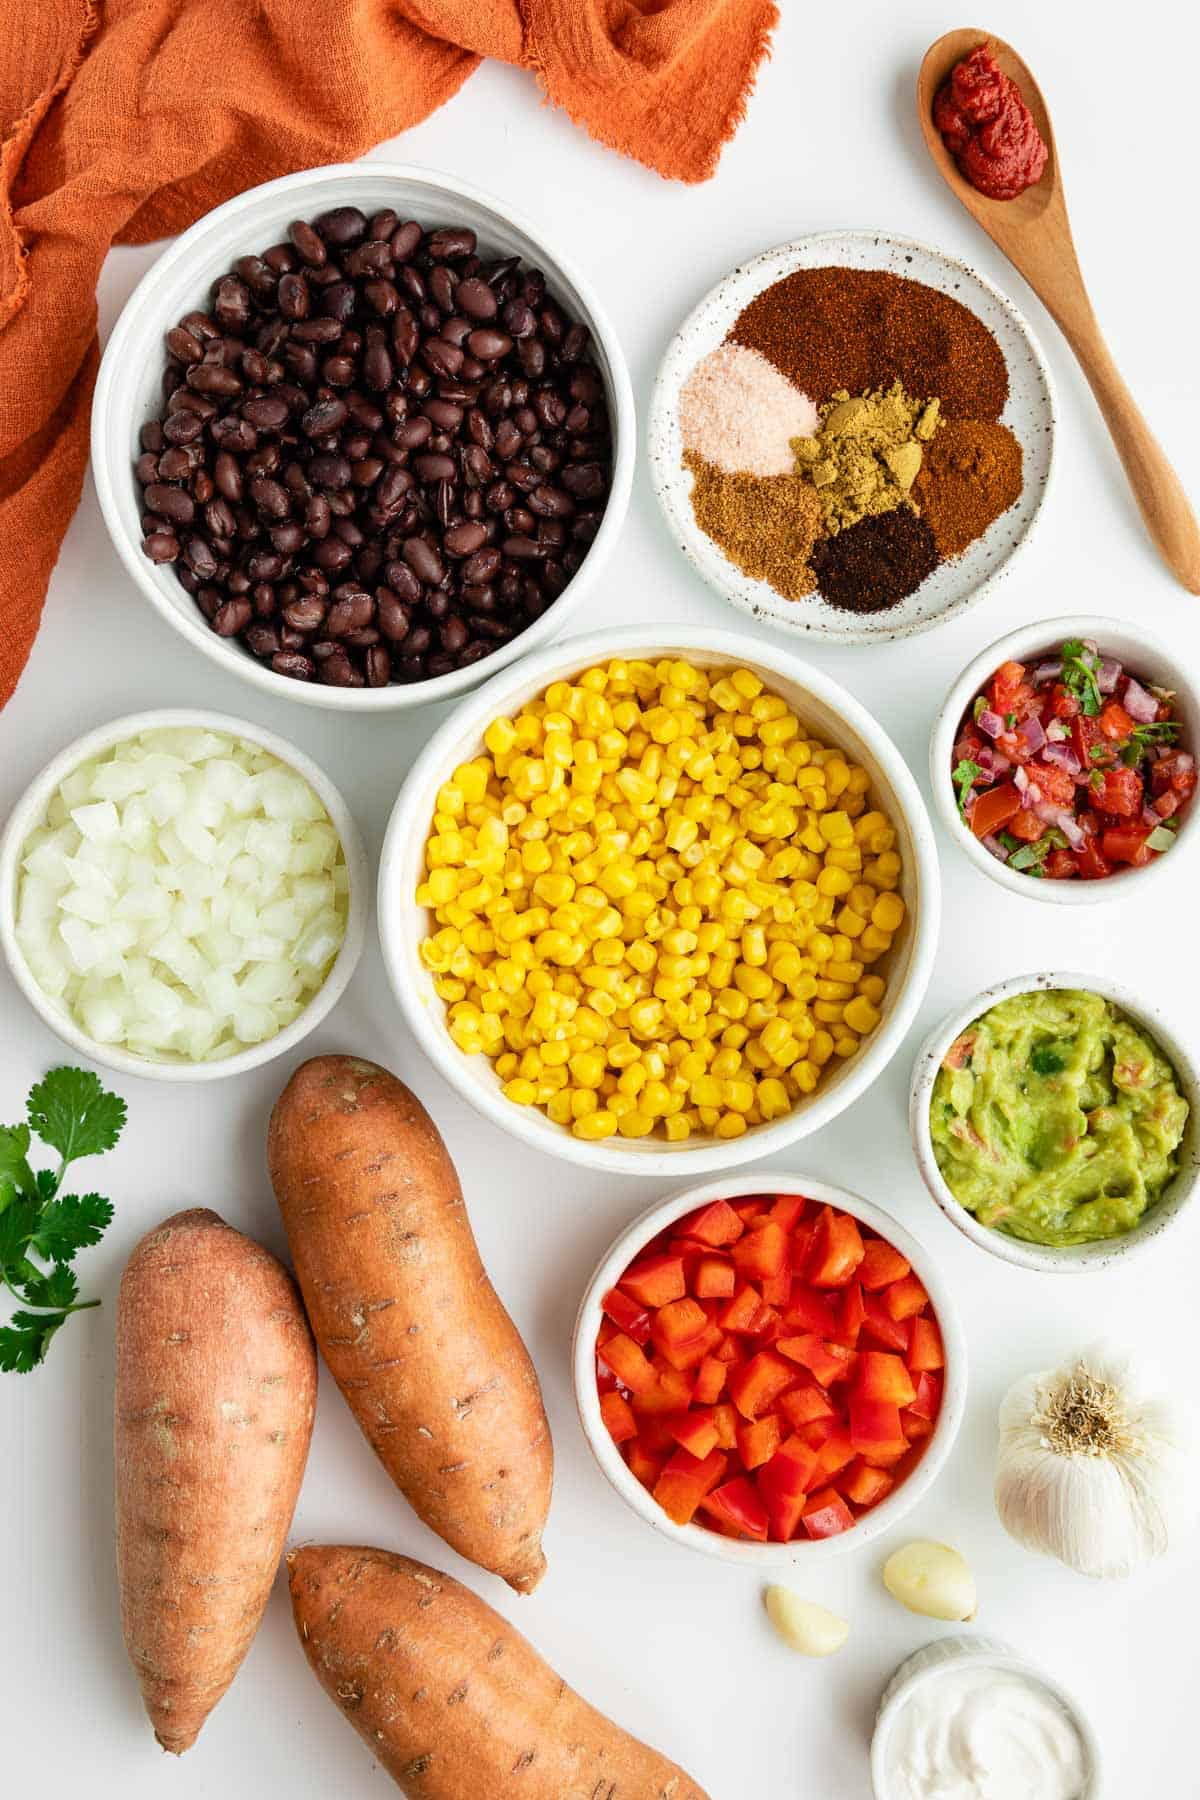 bowls of black beans, corn, onion, red peppers, spices, guacamole, pico de gallo, and three sweet potatoes